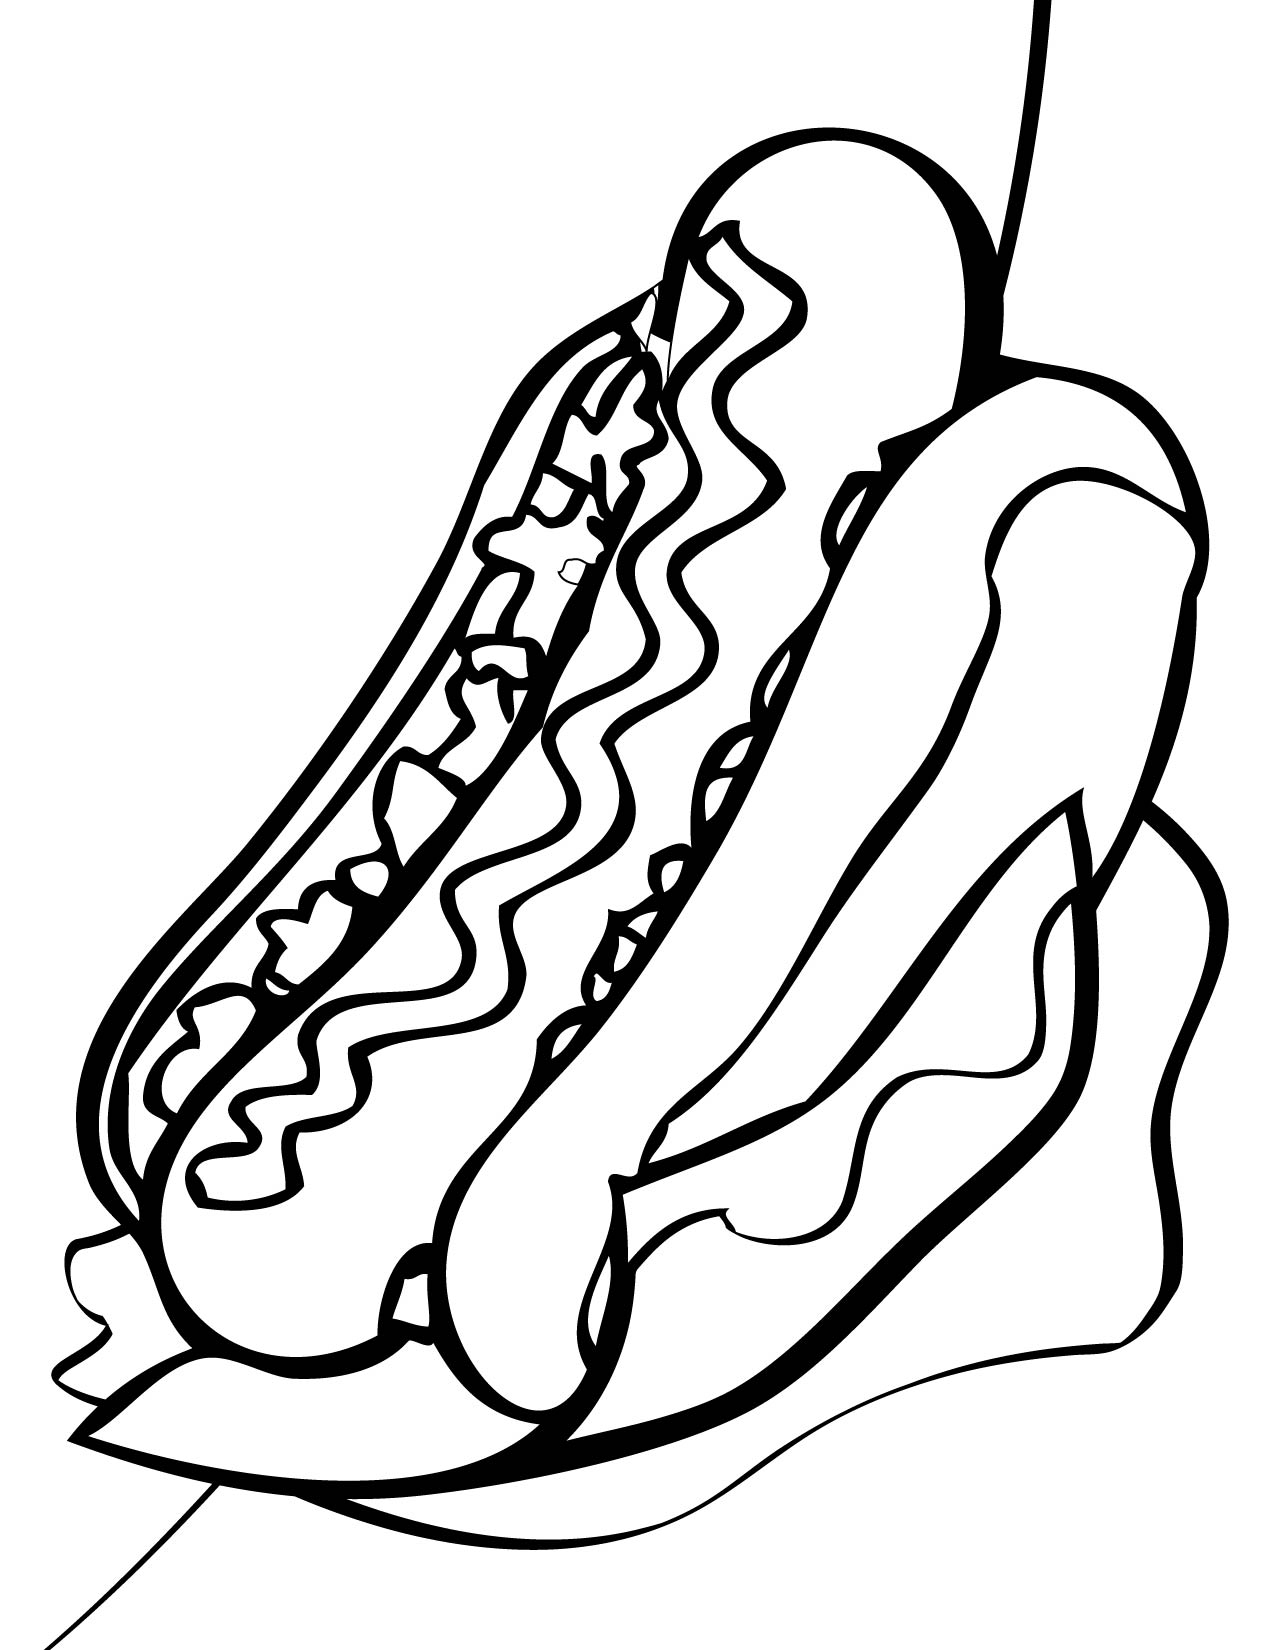 hot dog coloring page awesome coloring page hot dog that you must know youre coloring page dog hot